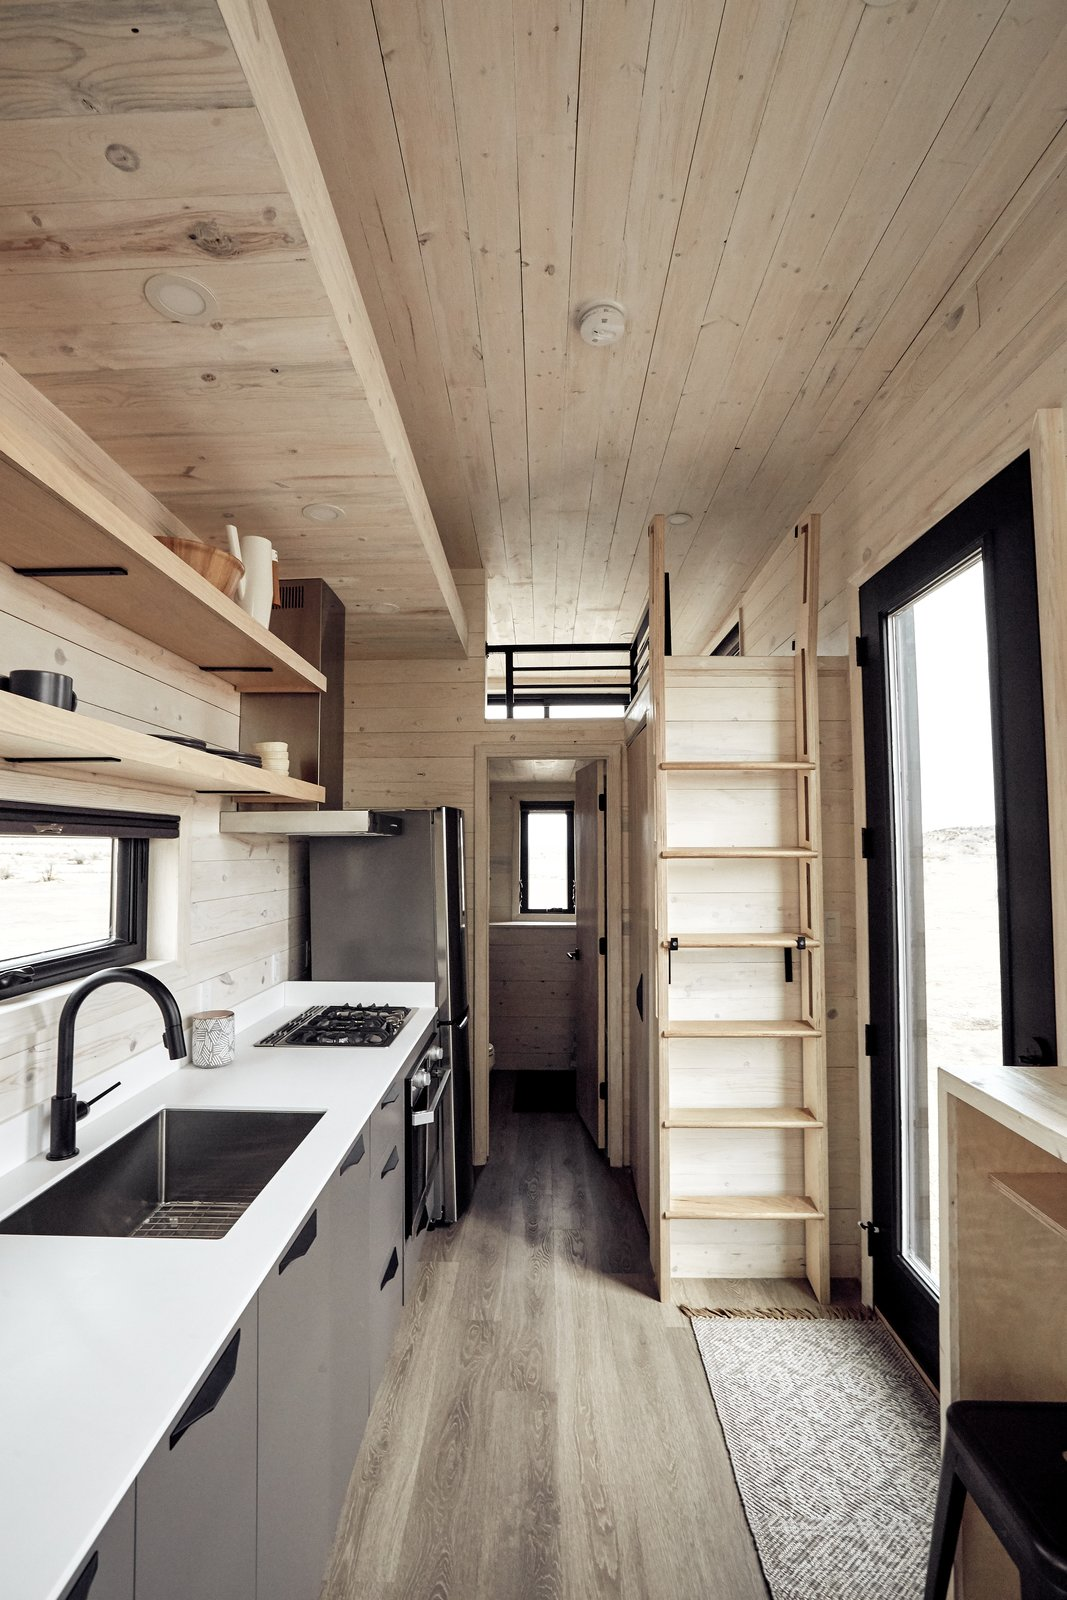 Kitchen, Refrigerator, Ceiling Lighting, Range Hood, Cooktops, Undermount Sink, and Wall Oven The tall ladder lives secured against the wall, but can be attached to either the guest loft or storage soffit, providing access to either.    Land Ark RV - Drake by Brian Buzarde